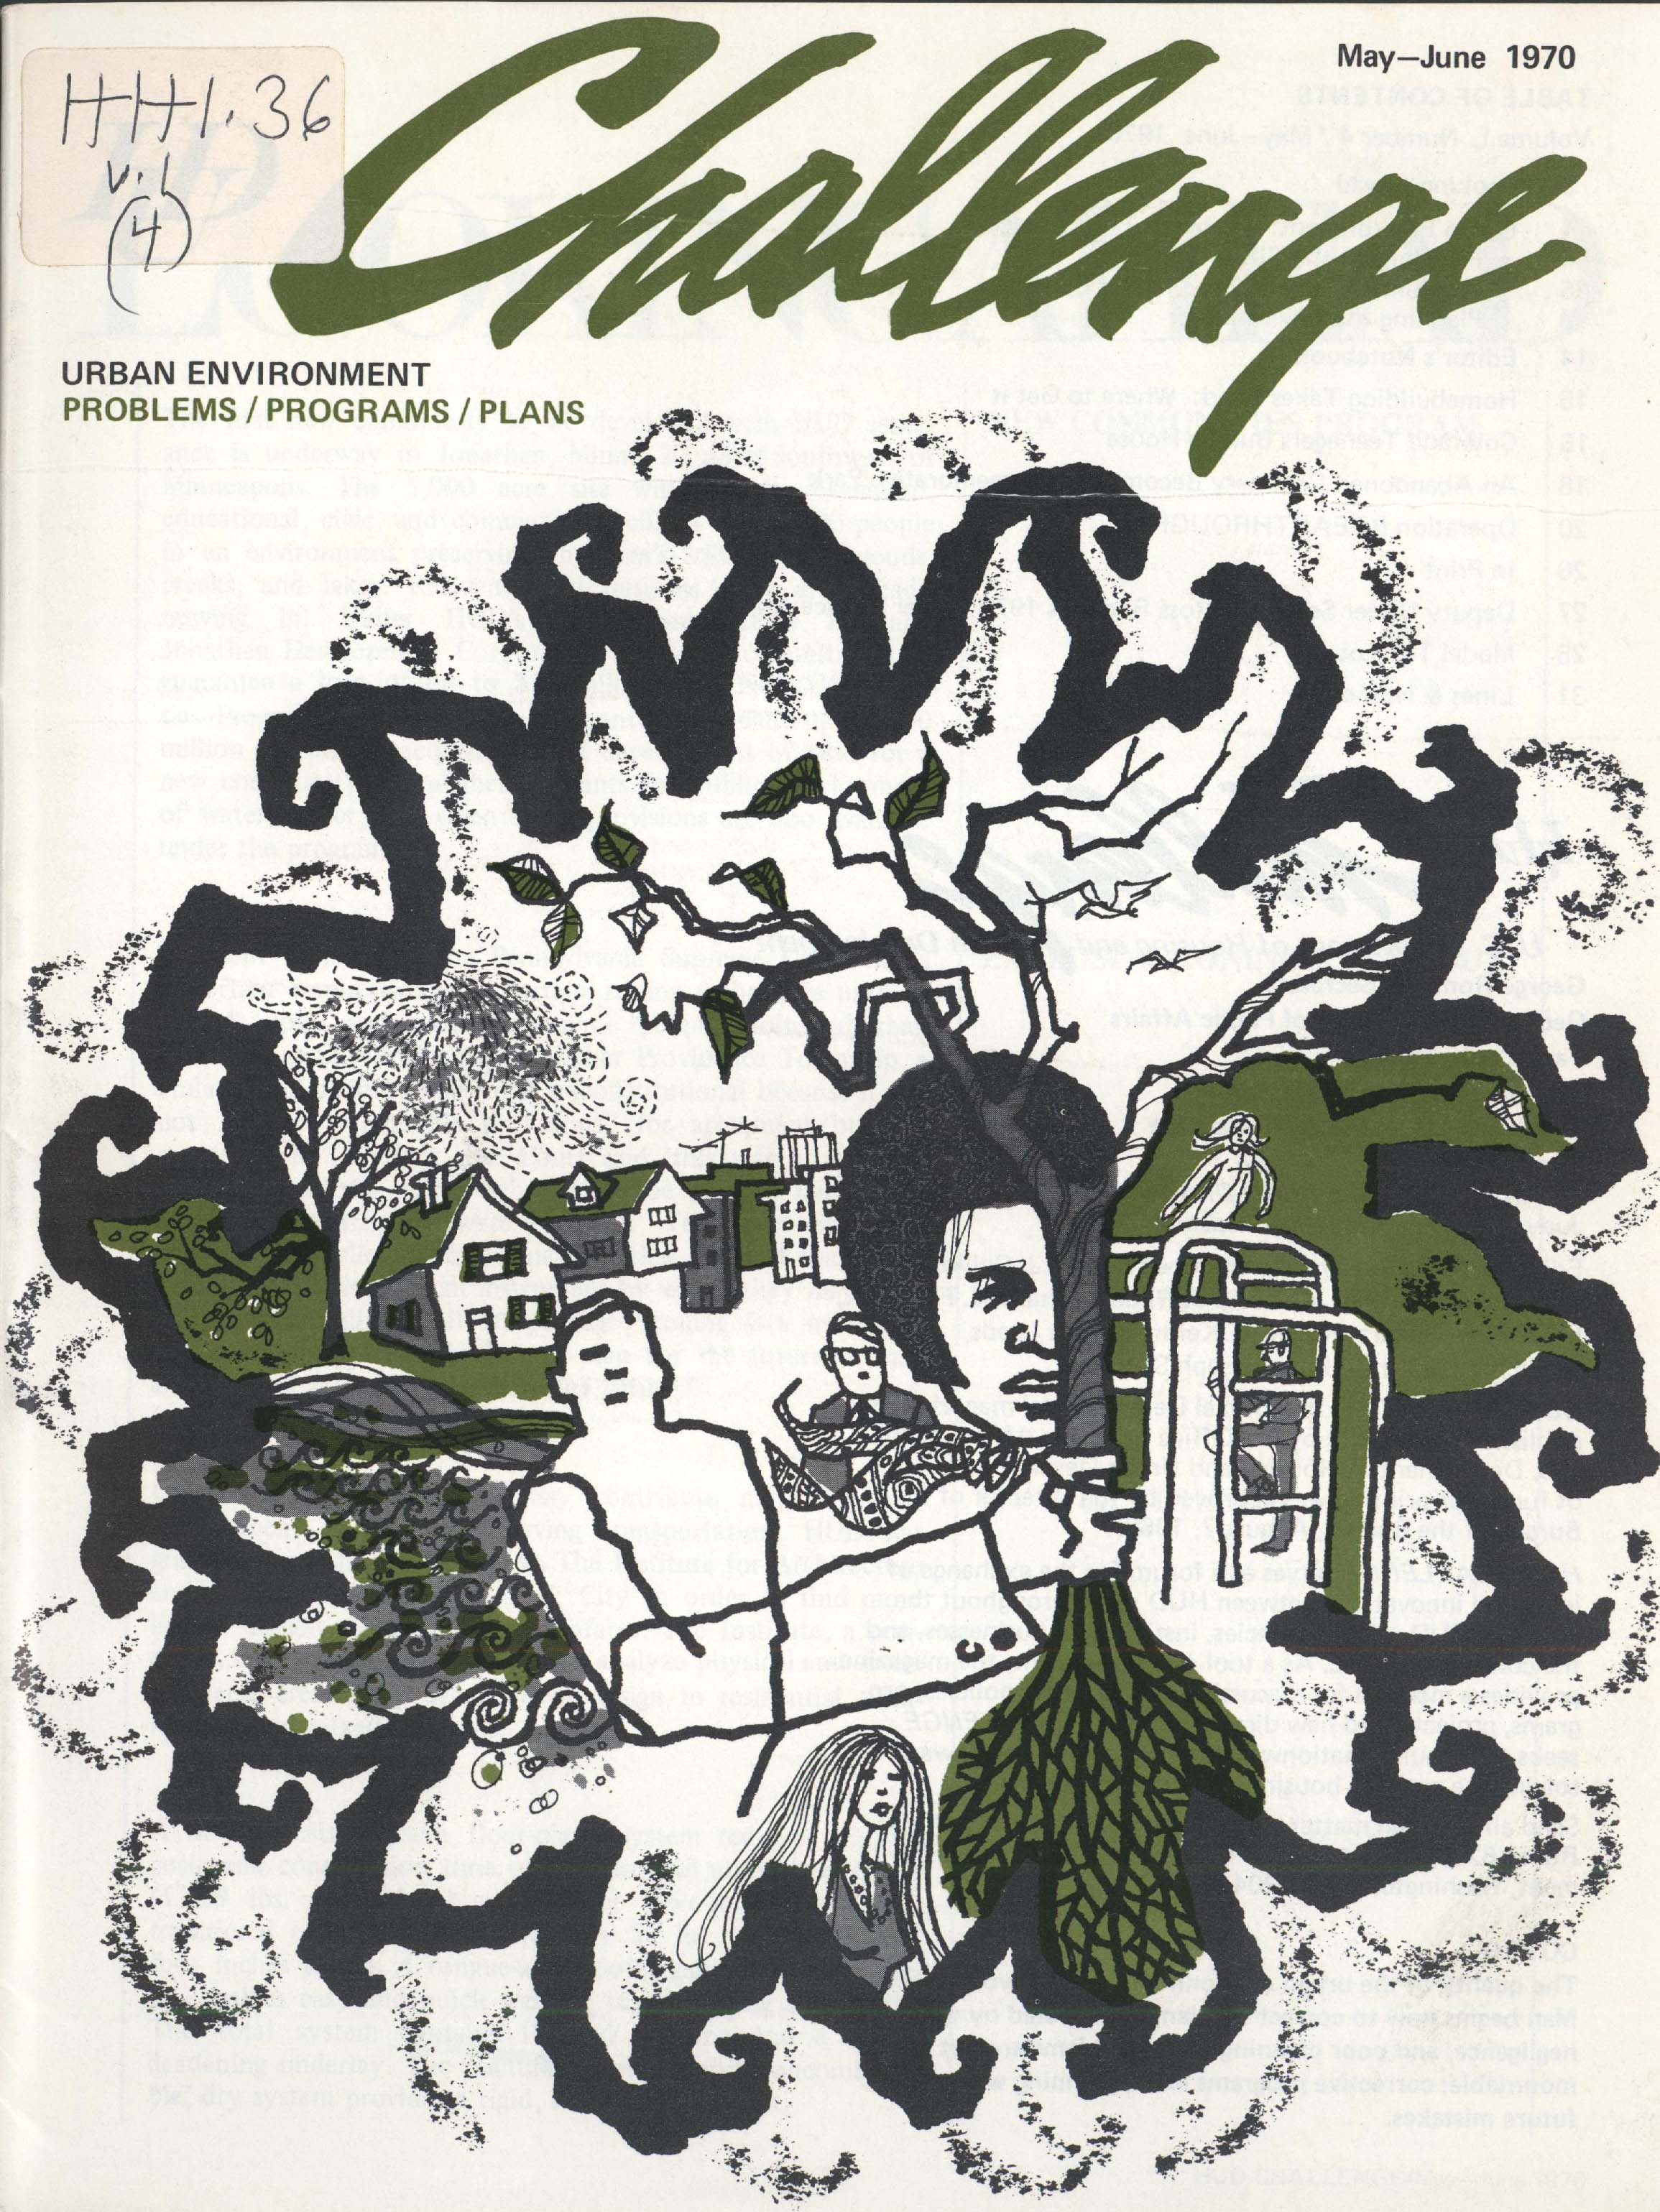 Cover of Challenge, May-June 1970